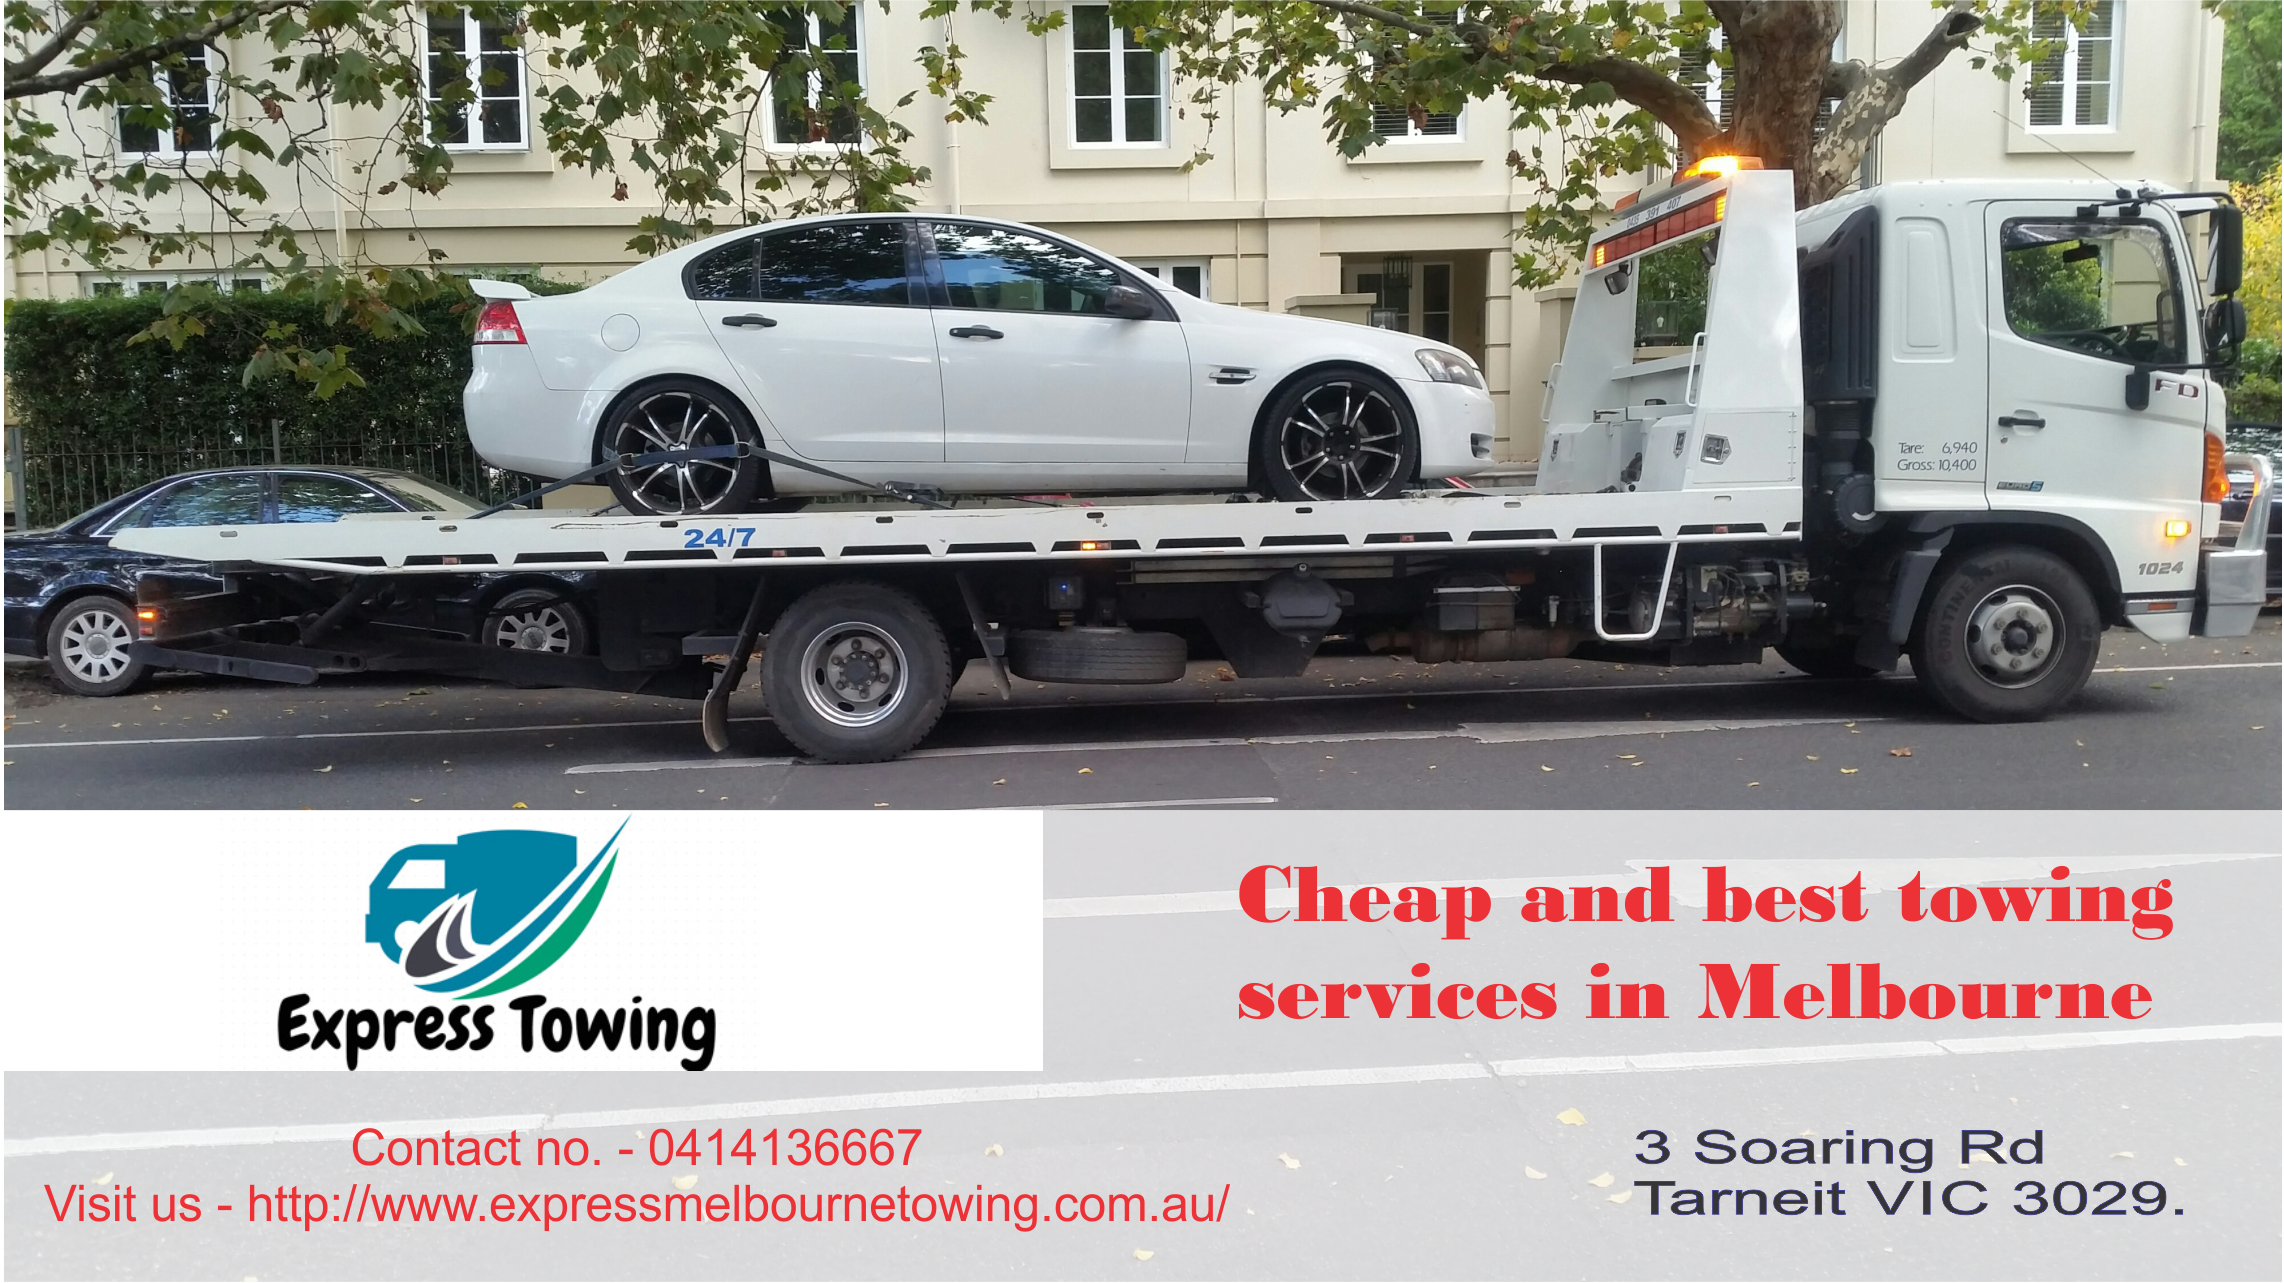 Want To Tow Your Vehicle? - Car towing & toll truck service in ...